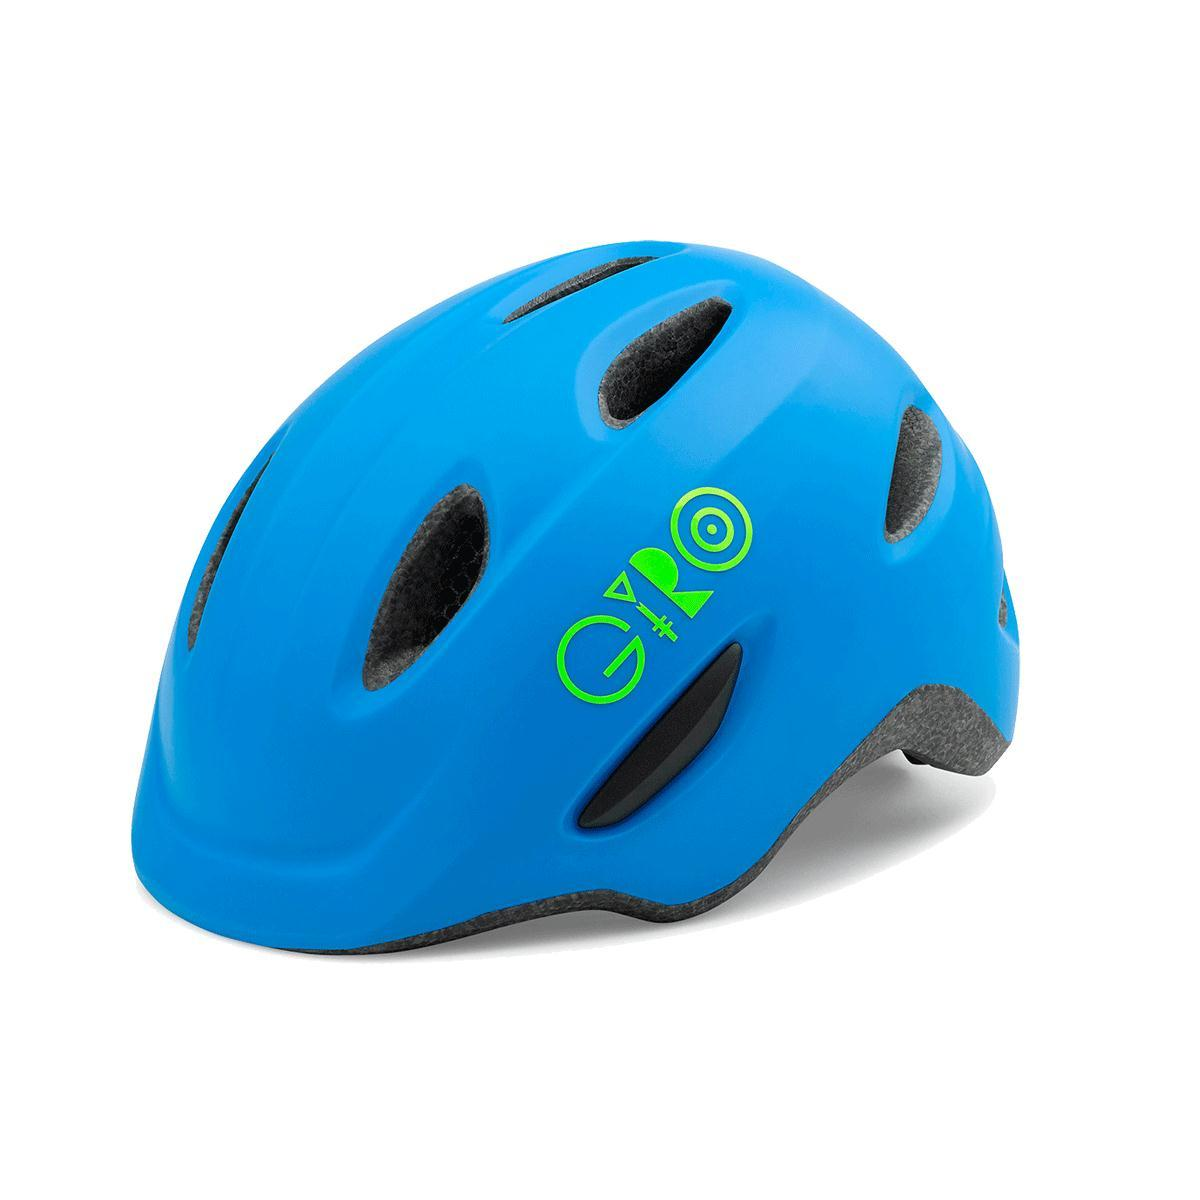 Fit System Helmet Giro Scamp Youth//Junior Roc Loc Jr